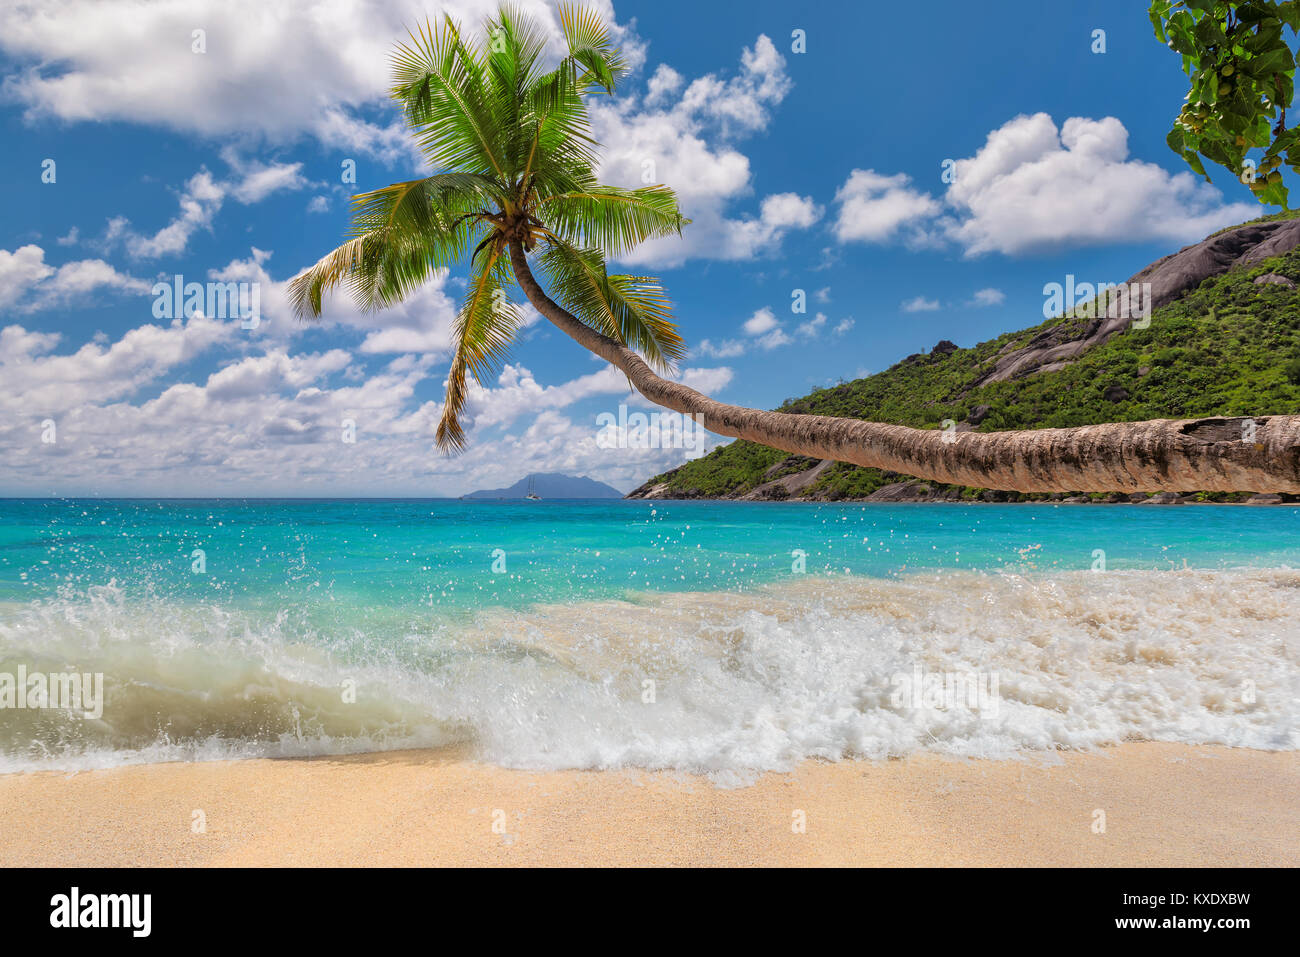 Palm tree on tropical beach in Seychelles, Mahe island. - Stock Image